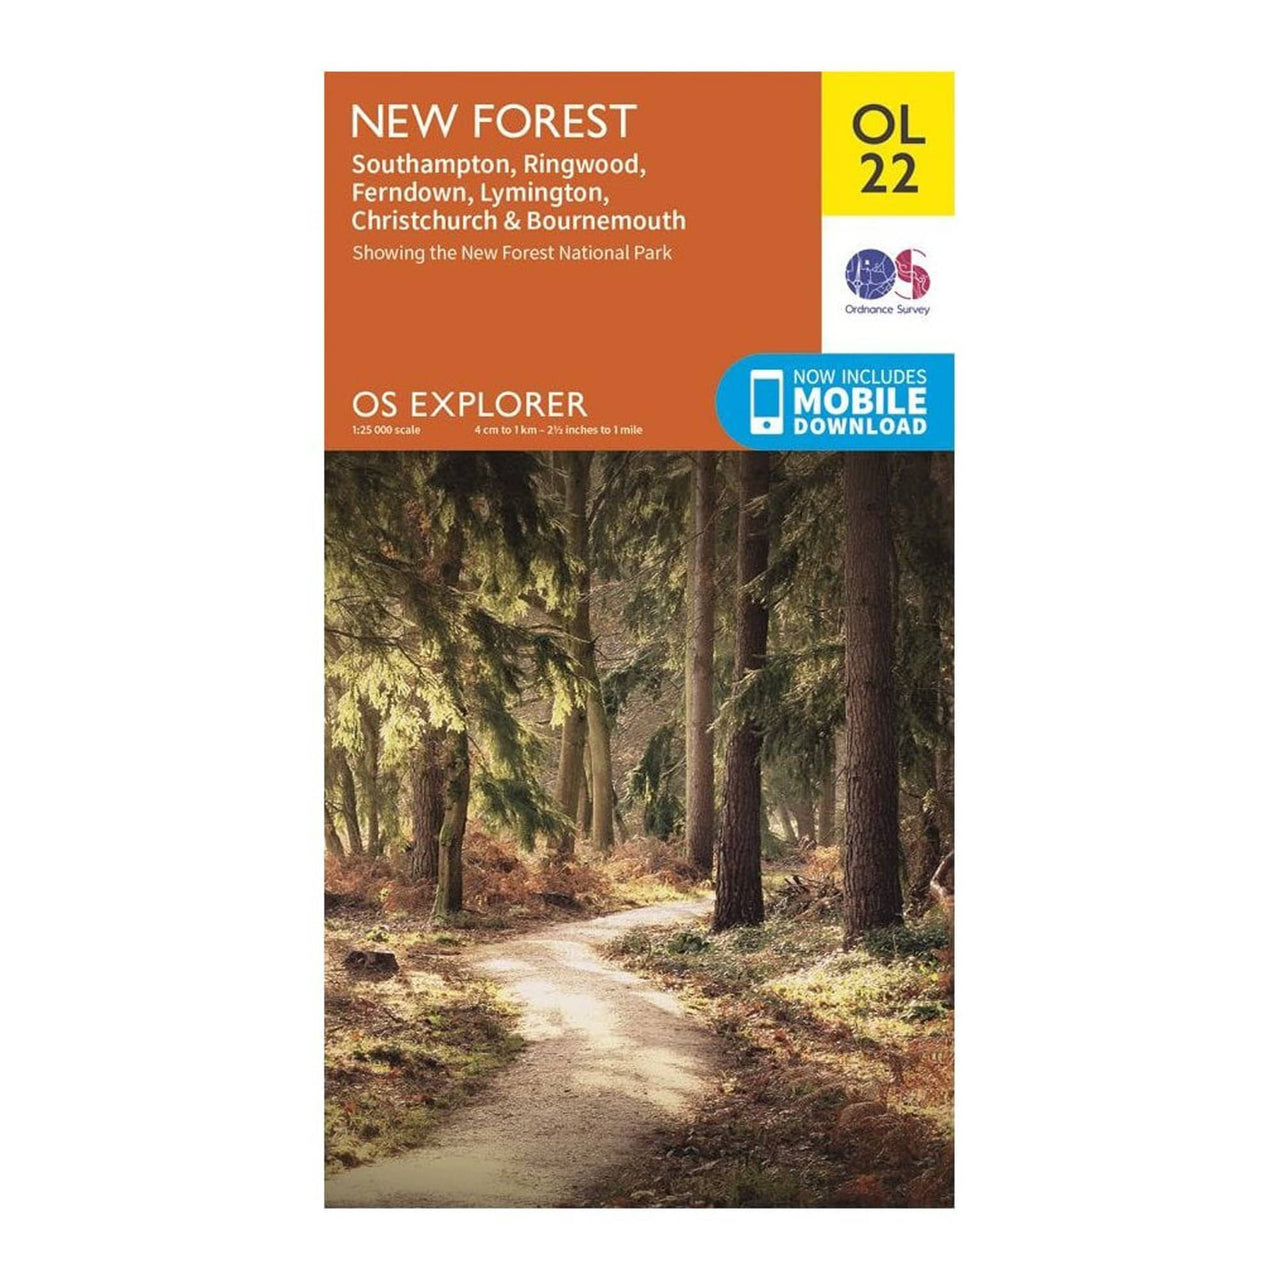 OS Explorer Maps: New Forest, Southampton, Ringwood and Bournemouth